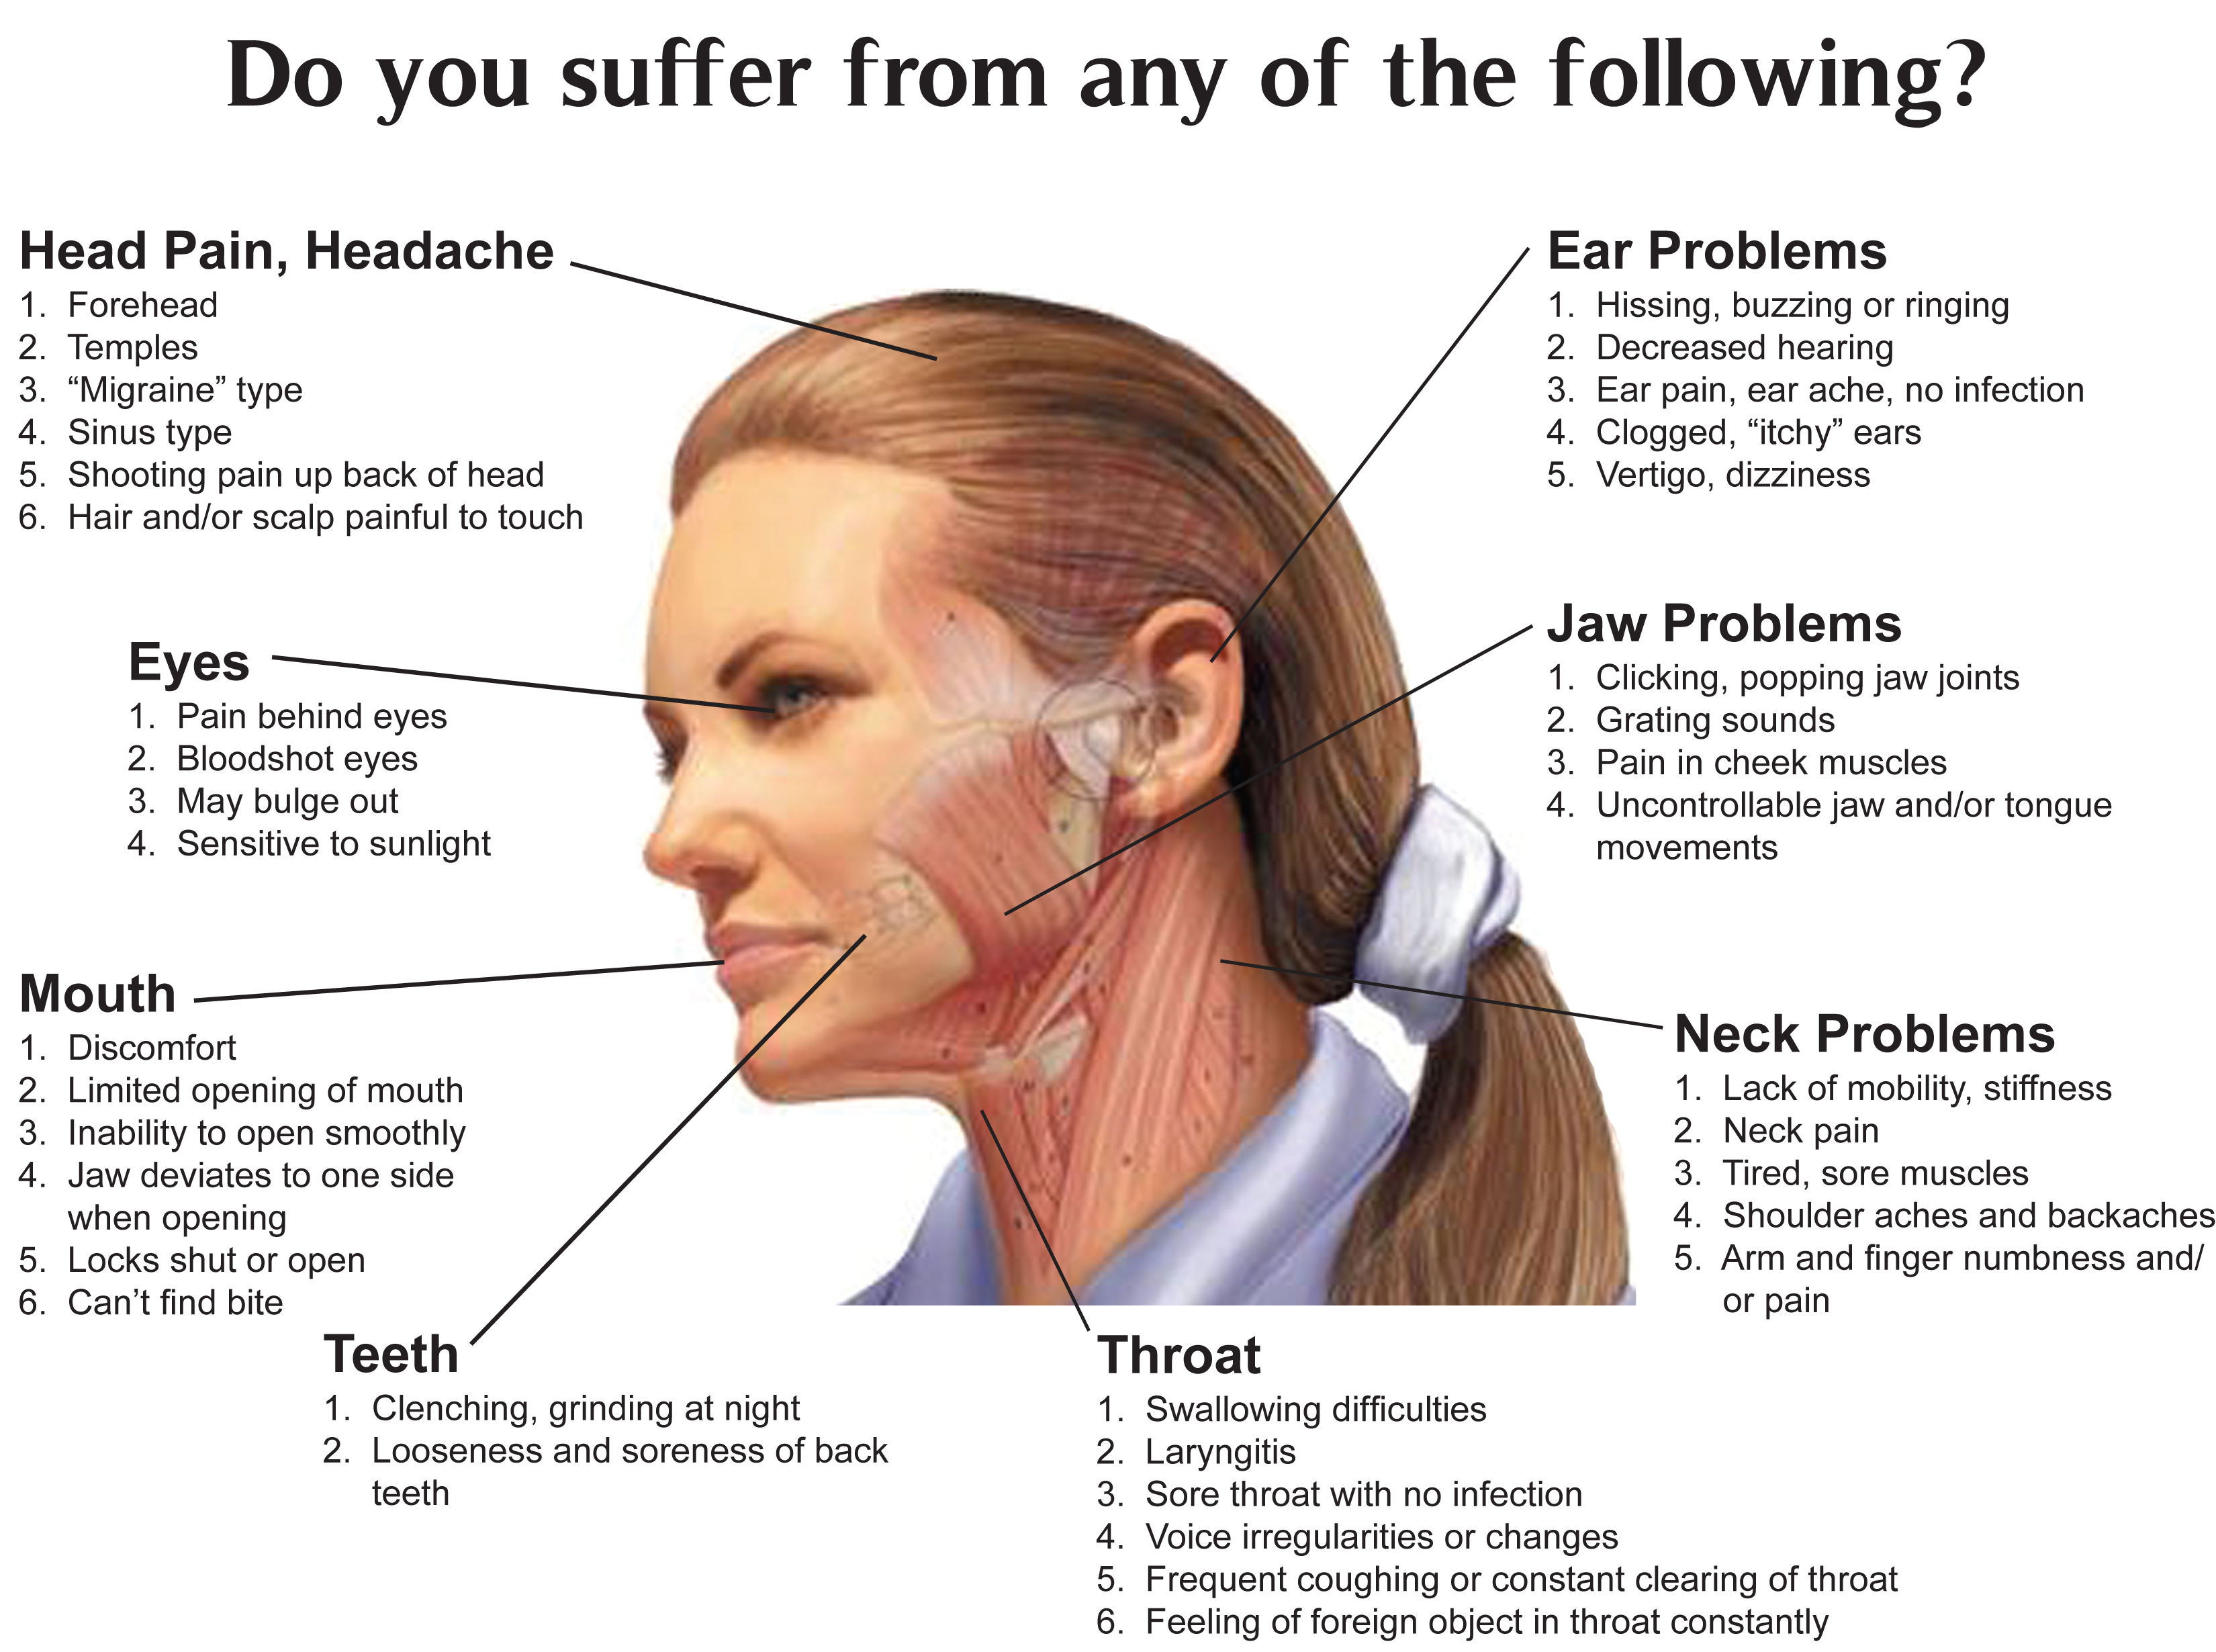 Facial and head pain